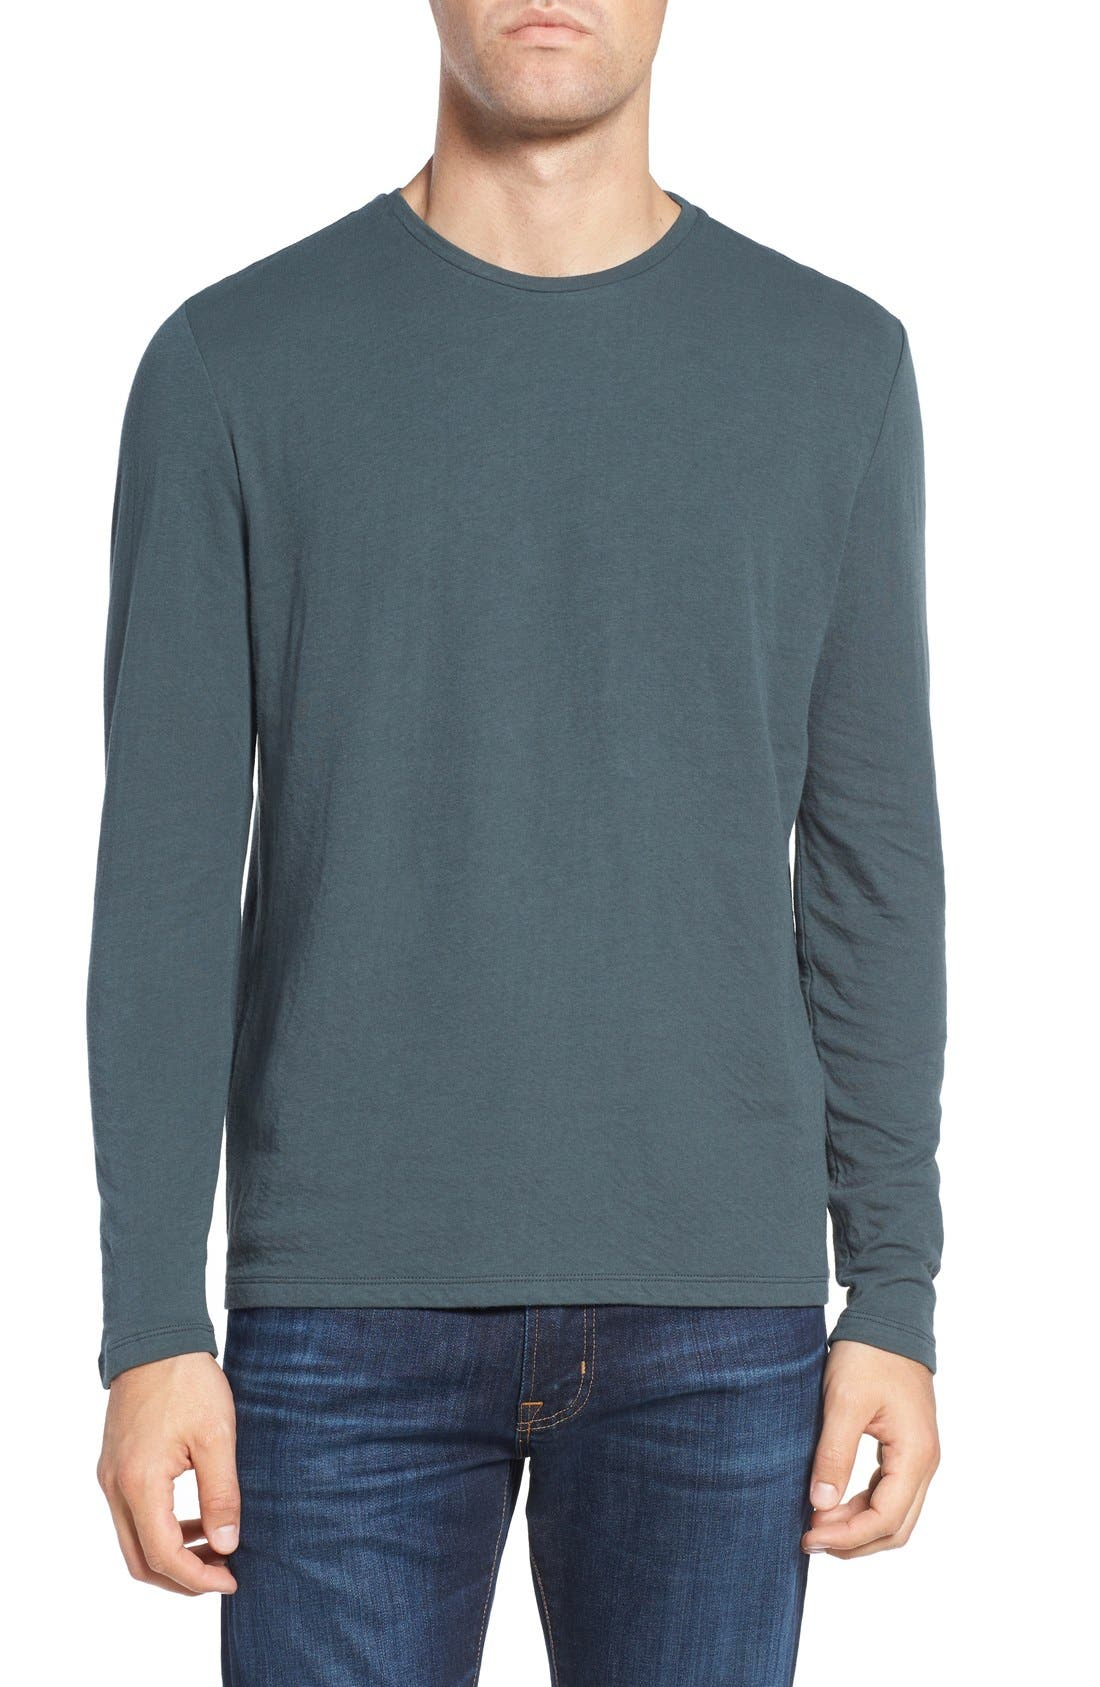 Main Image - Zachary Prell Long Sleeve Crewneck T-Shirt